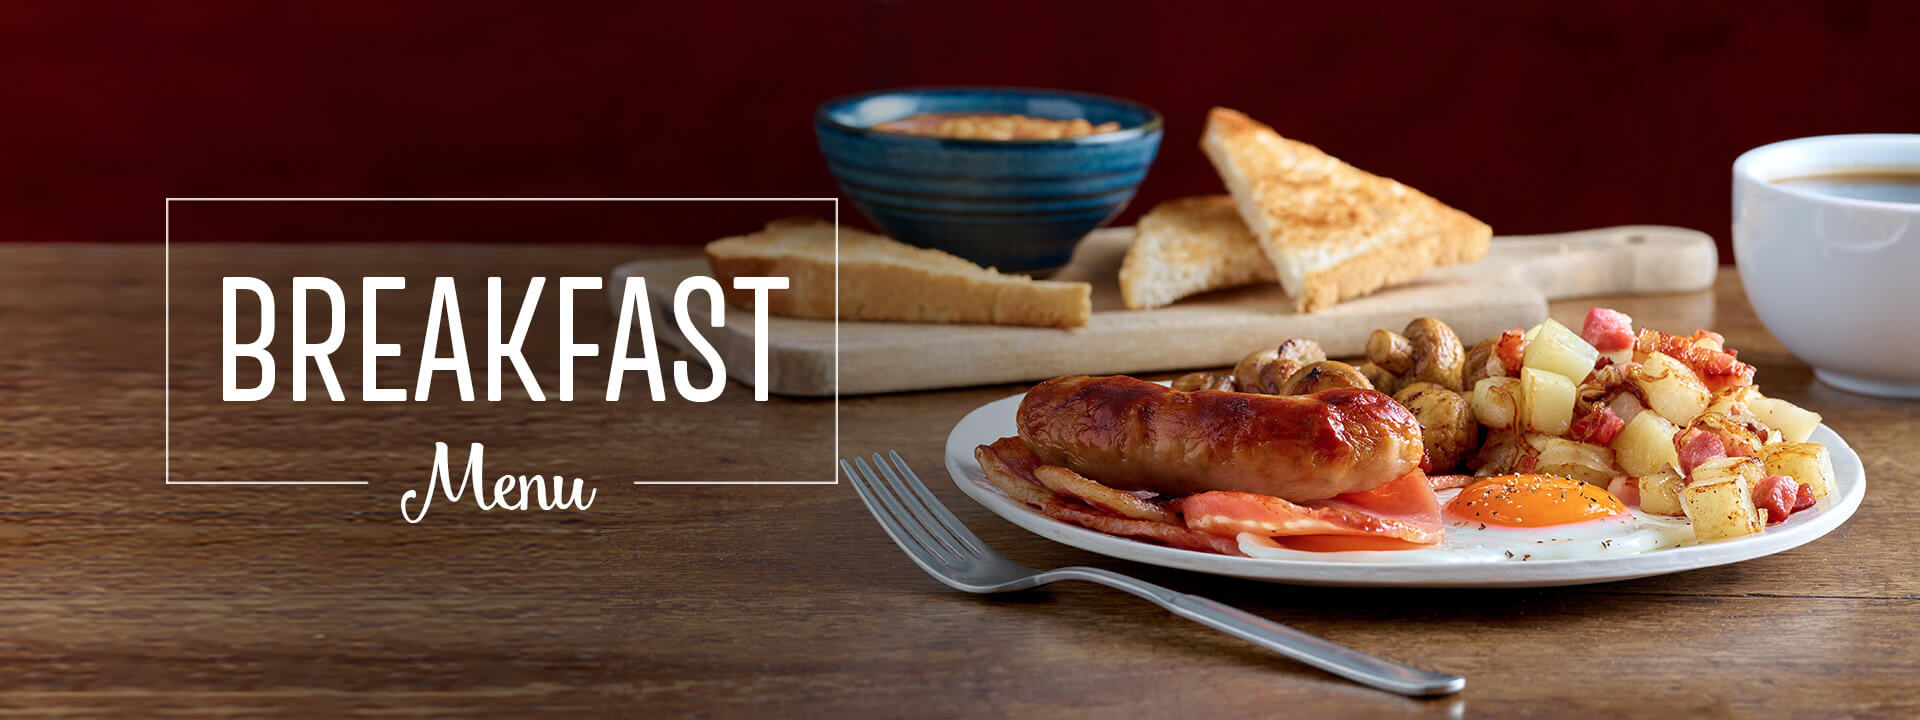 Breakfast at Toby Carvery Bradford - Book Now